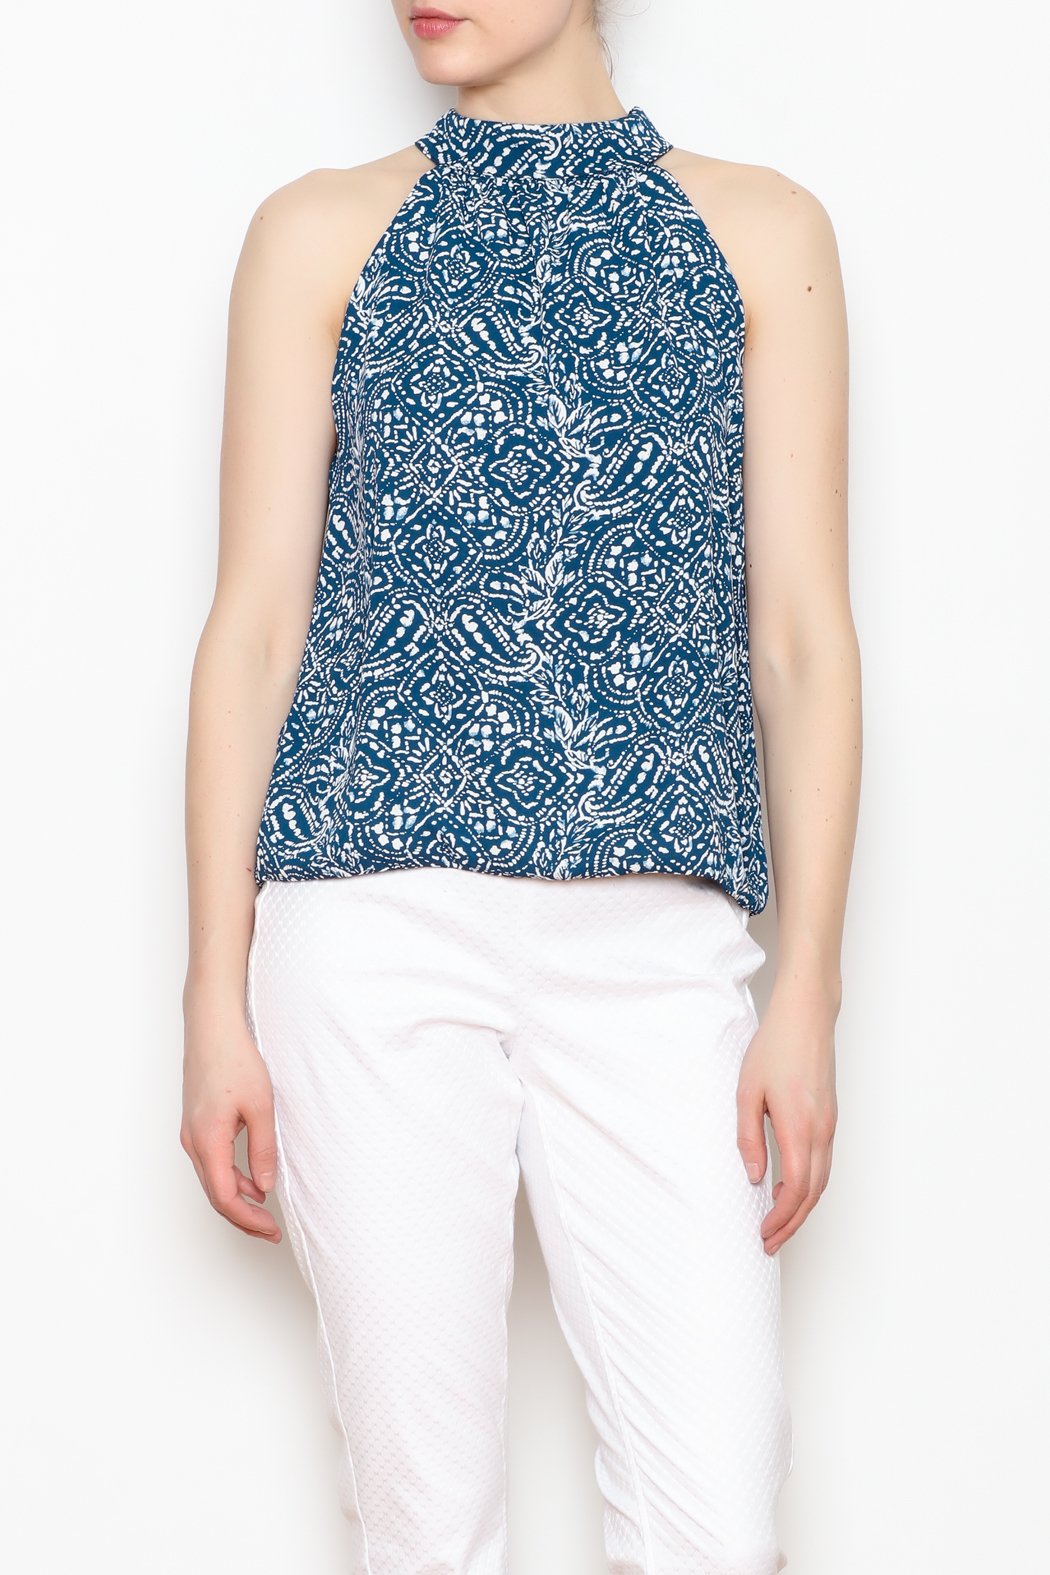 Olivaceous Halter Neck Printed Blouse - Main Image